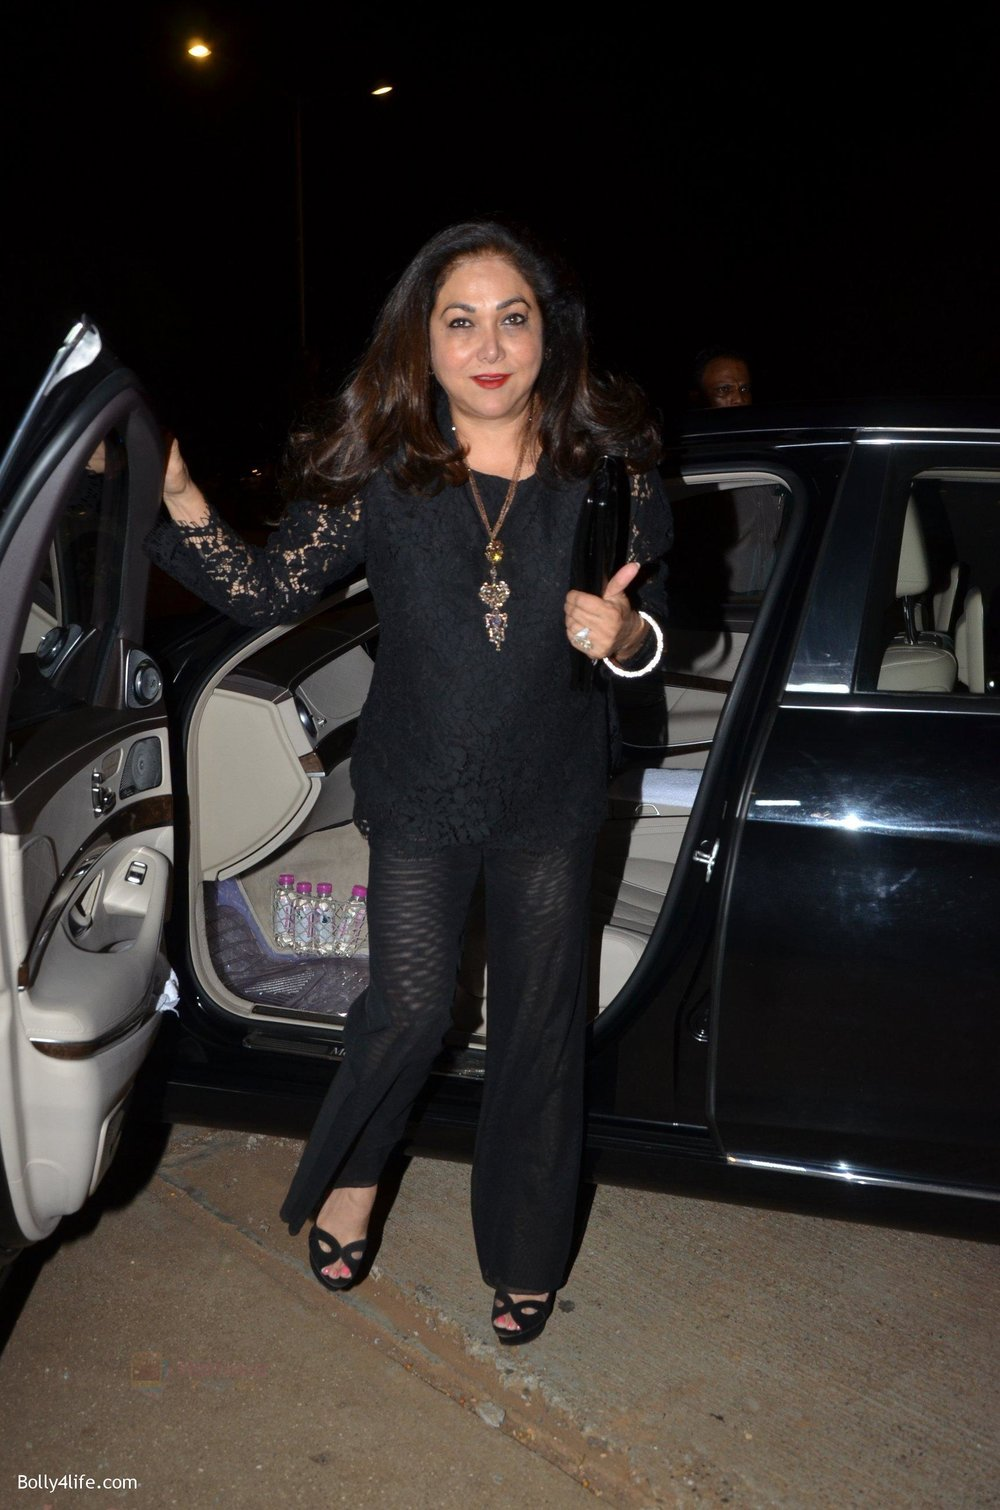 Tina-Ambani-at-Reema-jain-bday-party-in-Amadeus-NCPA-on-28th-Sept-2016-618.jpg